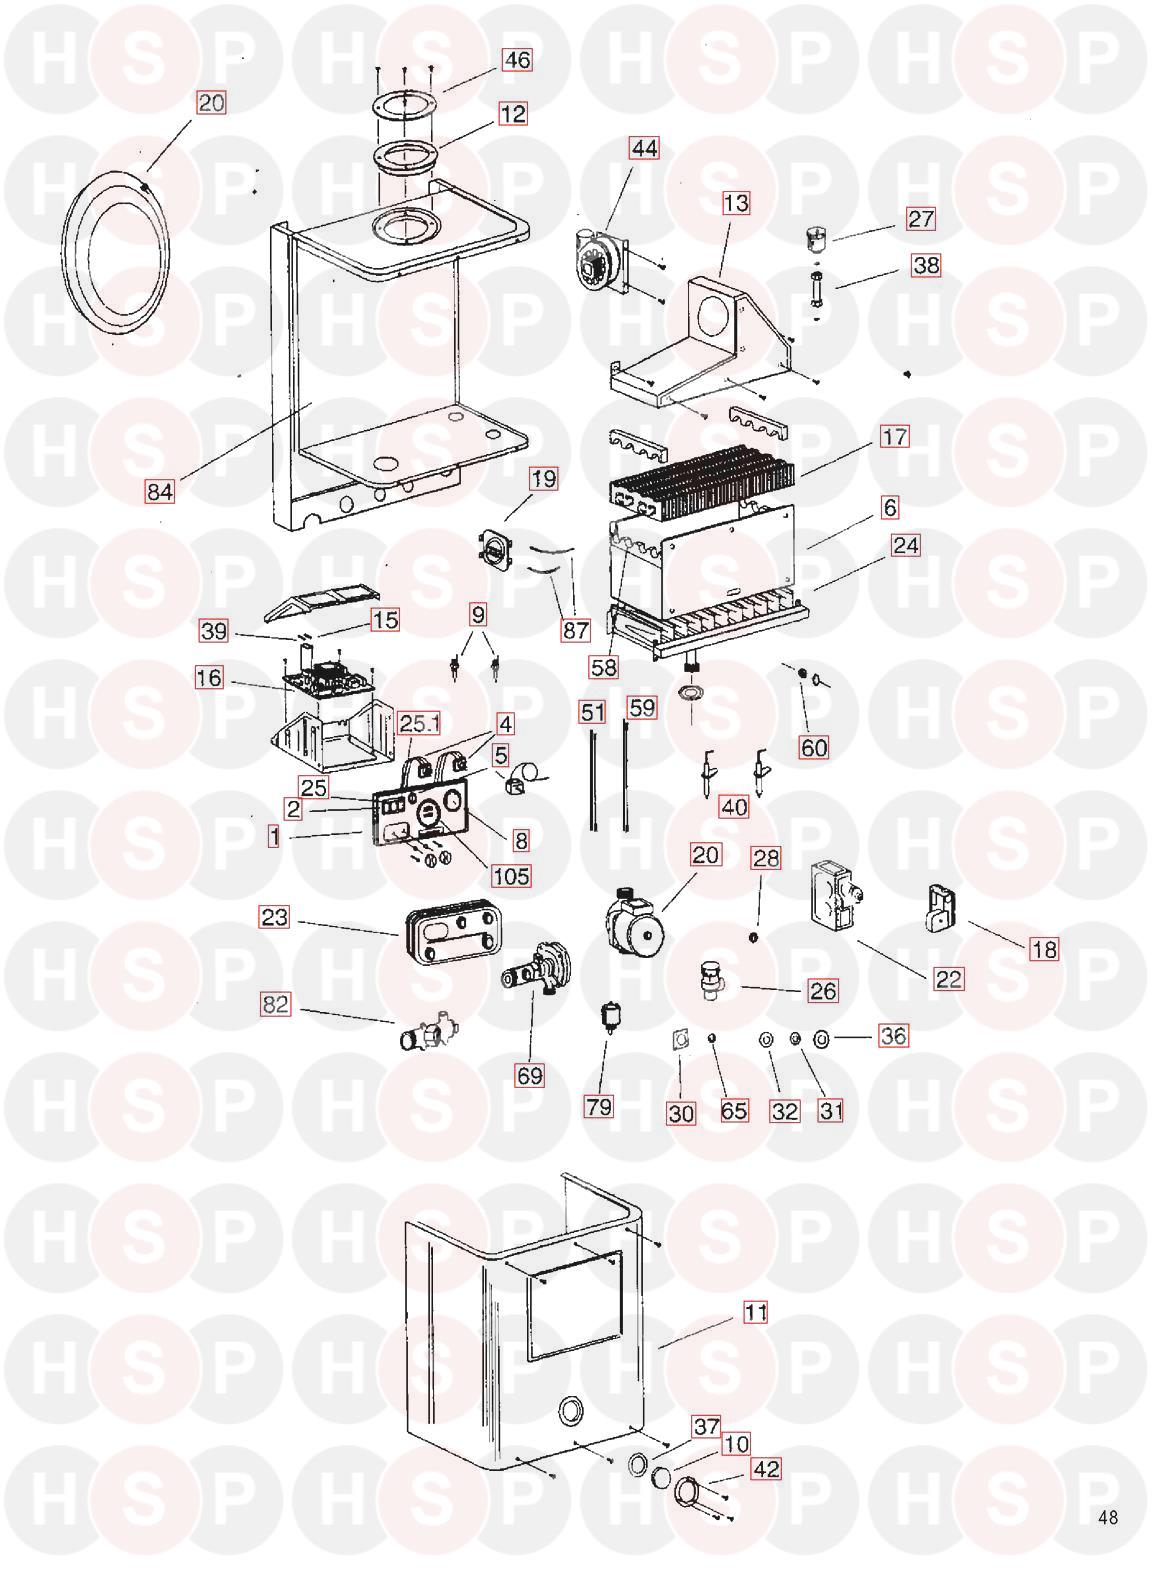 Boiler Exploded View diagram for Ravenheat LS 100T NG/LPG With/Without Timer